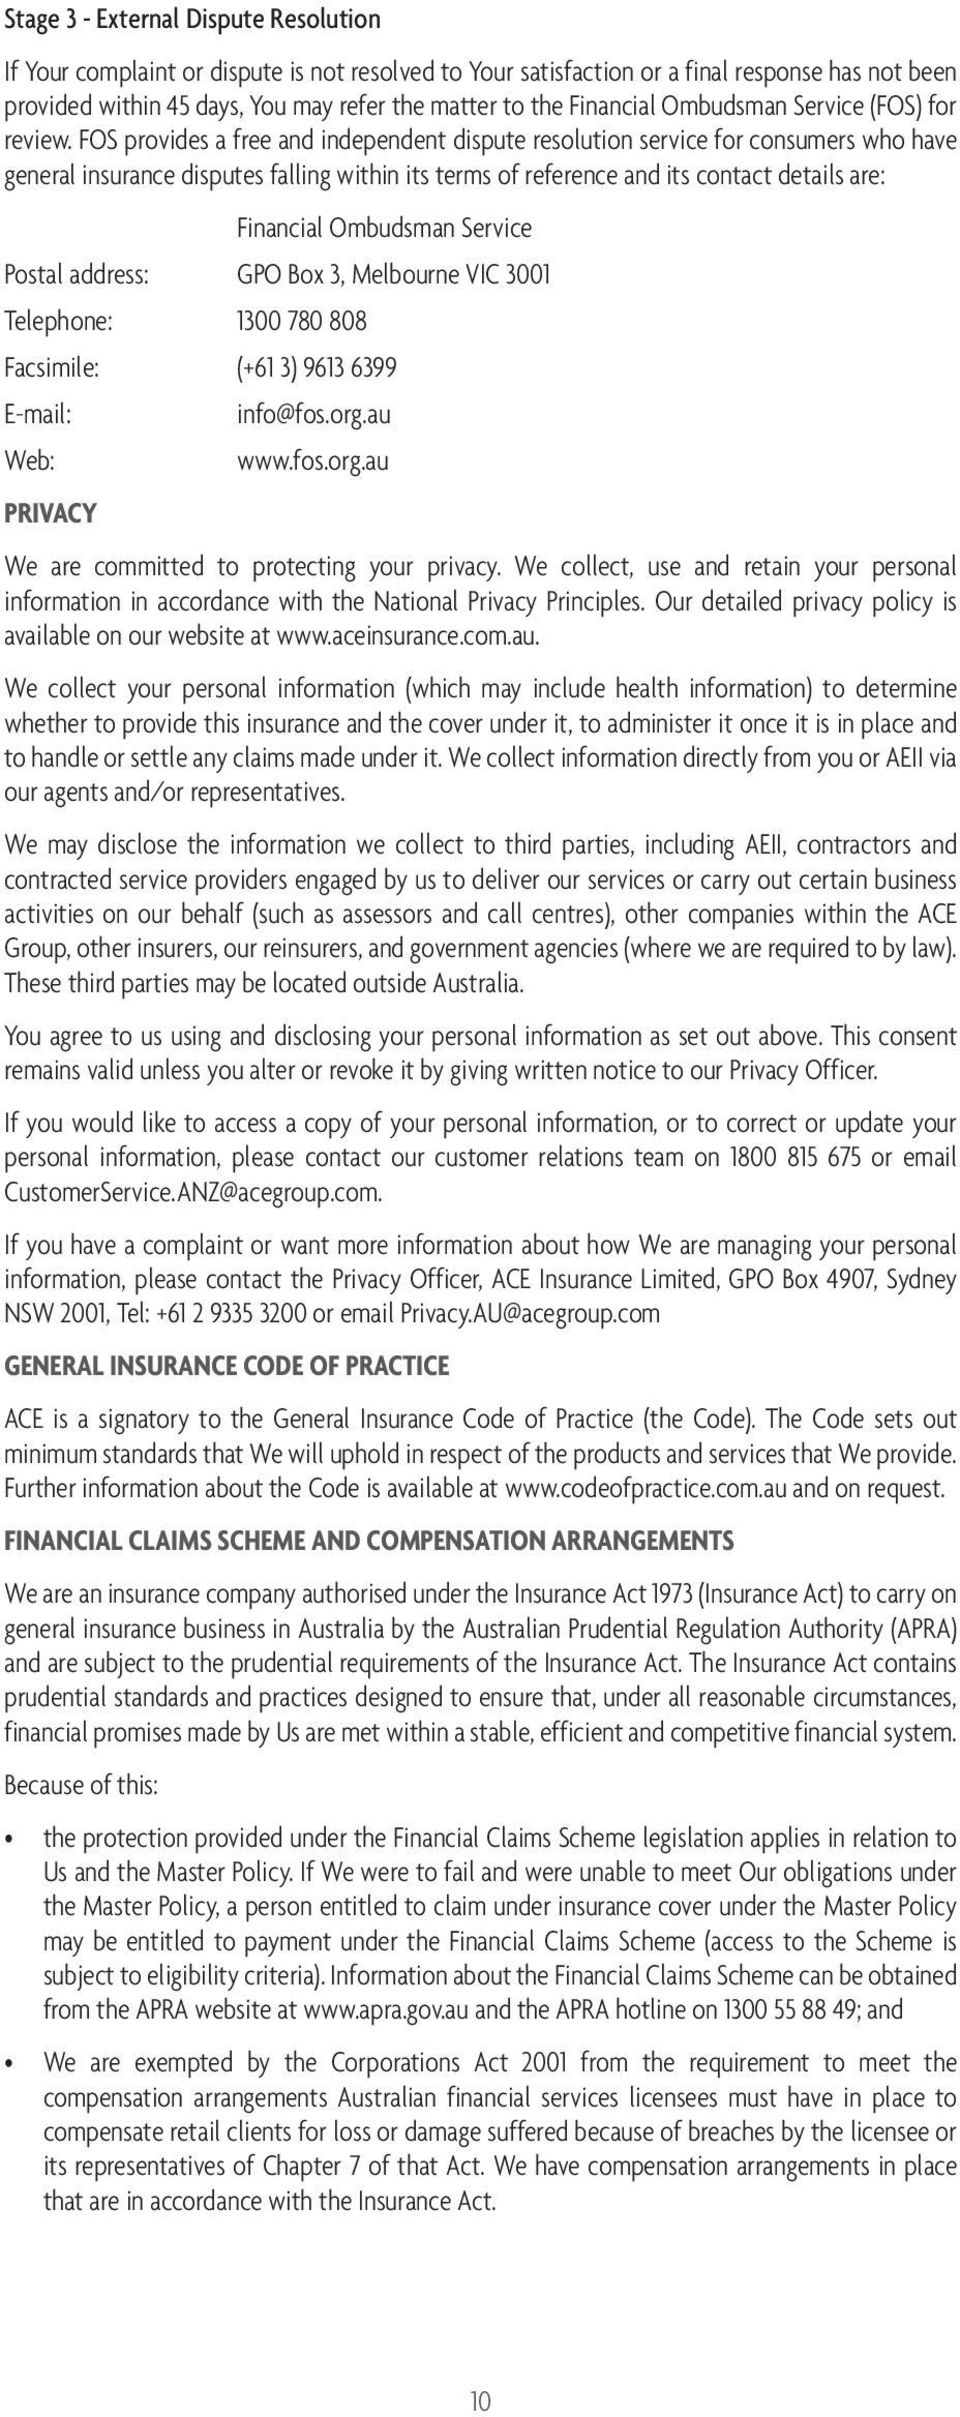 FOS provides a free and independent dispute resolution service for consumers who have general insurance disputes falling within its terms of reference and its contact details are: Financial Ombudsman